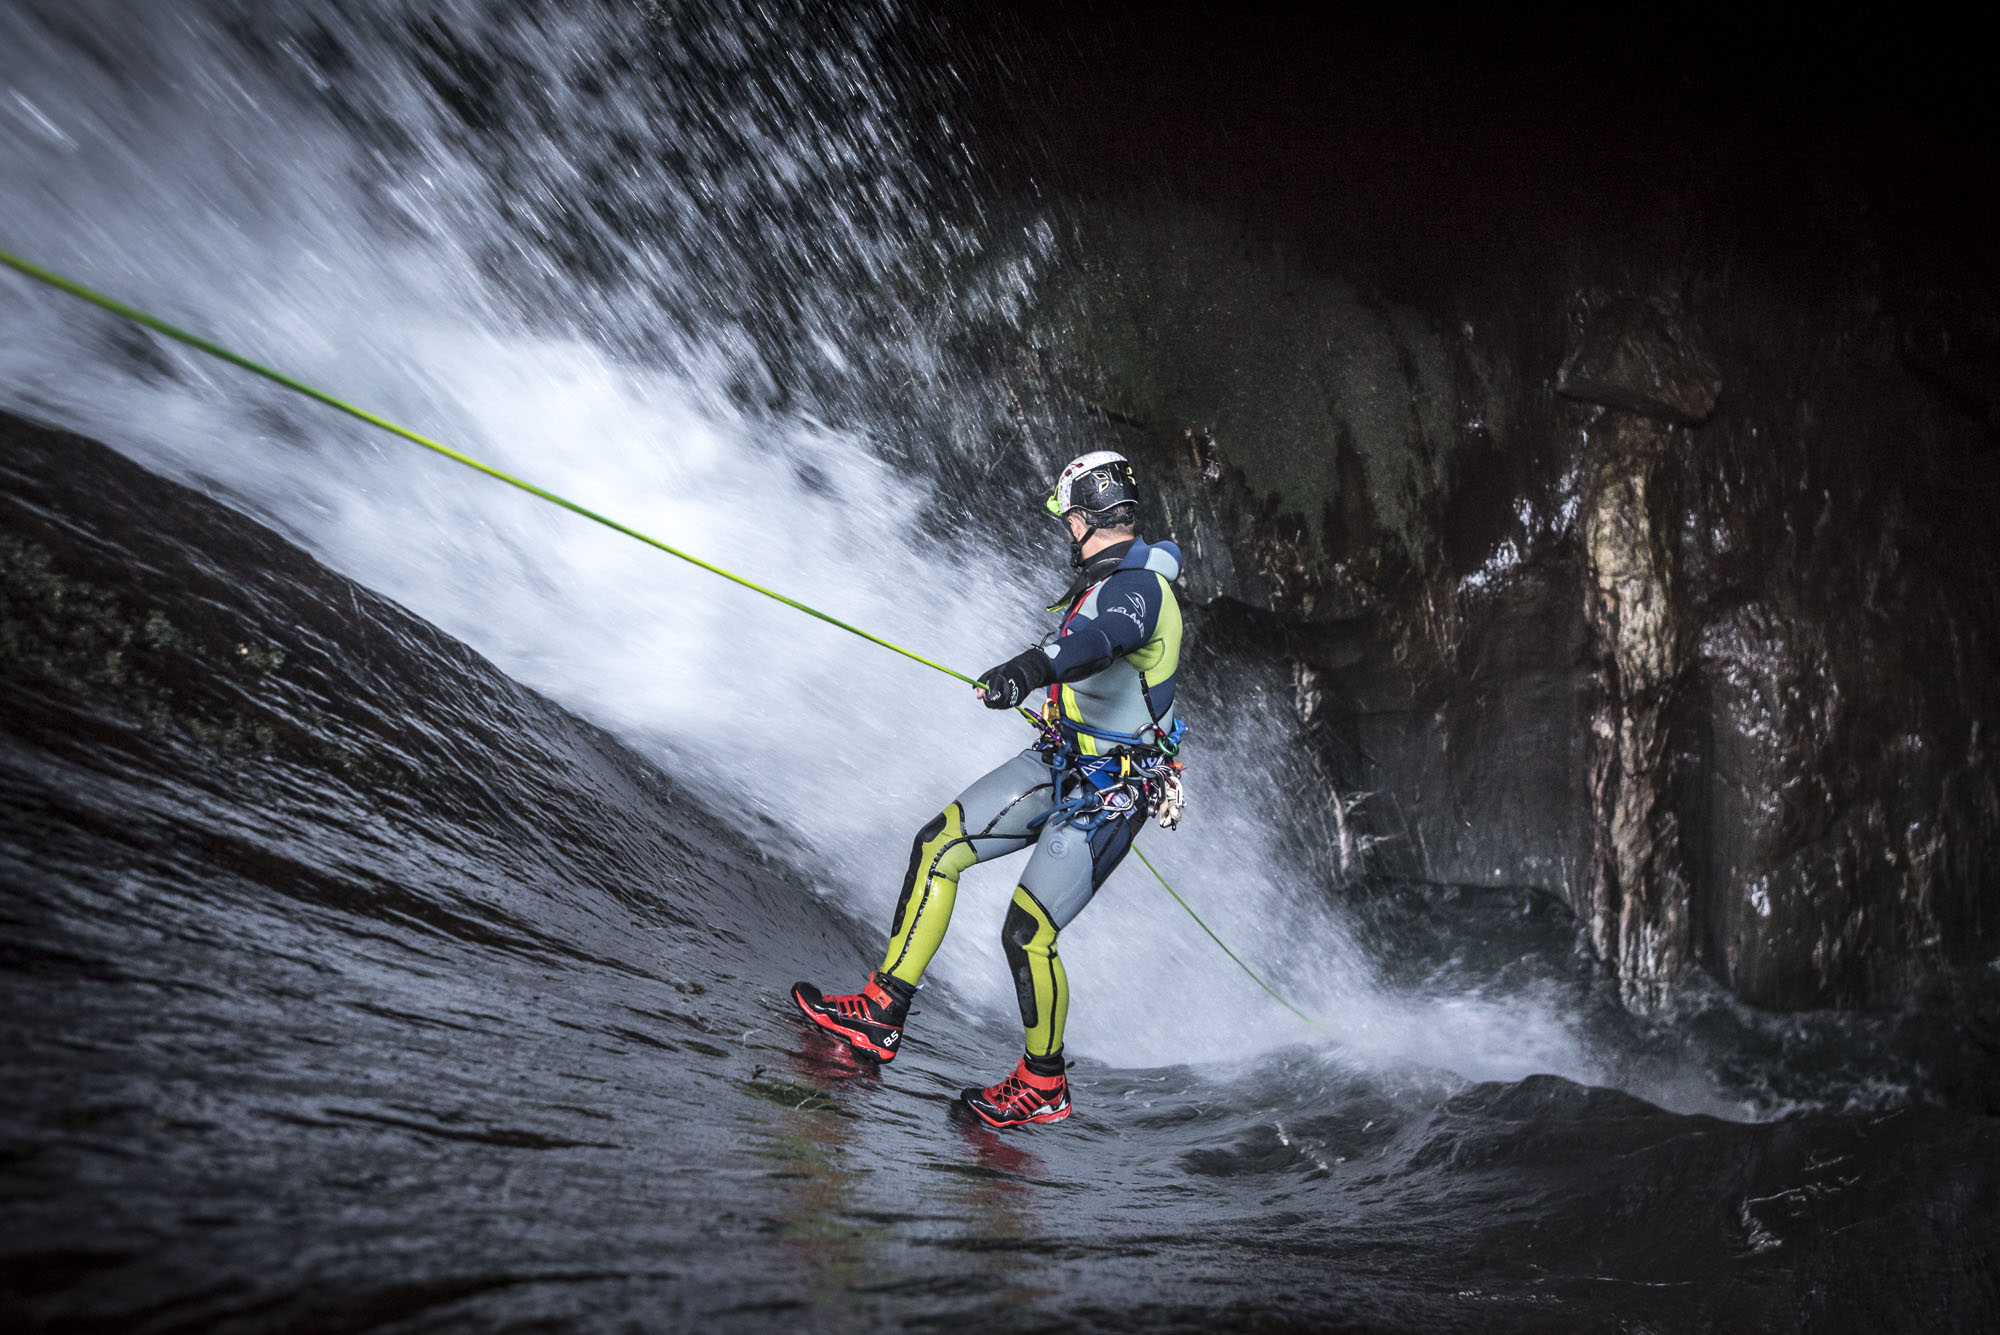 Canyoning or canyoneering requires rappelling © V7 Academy